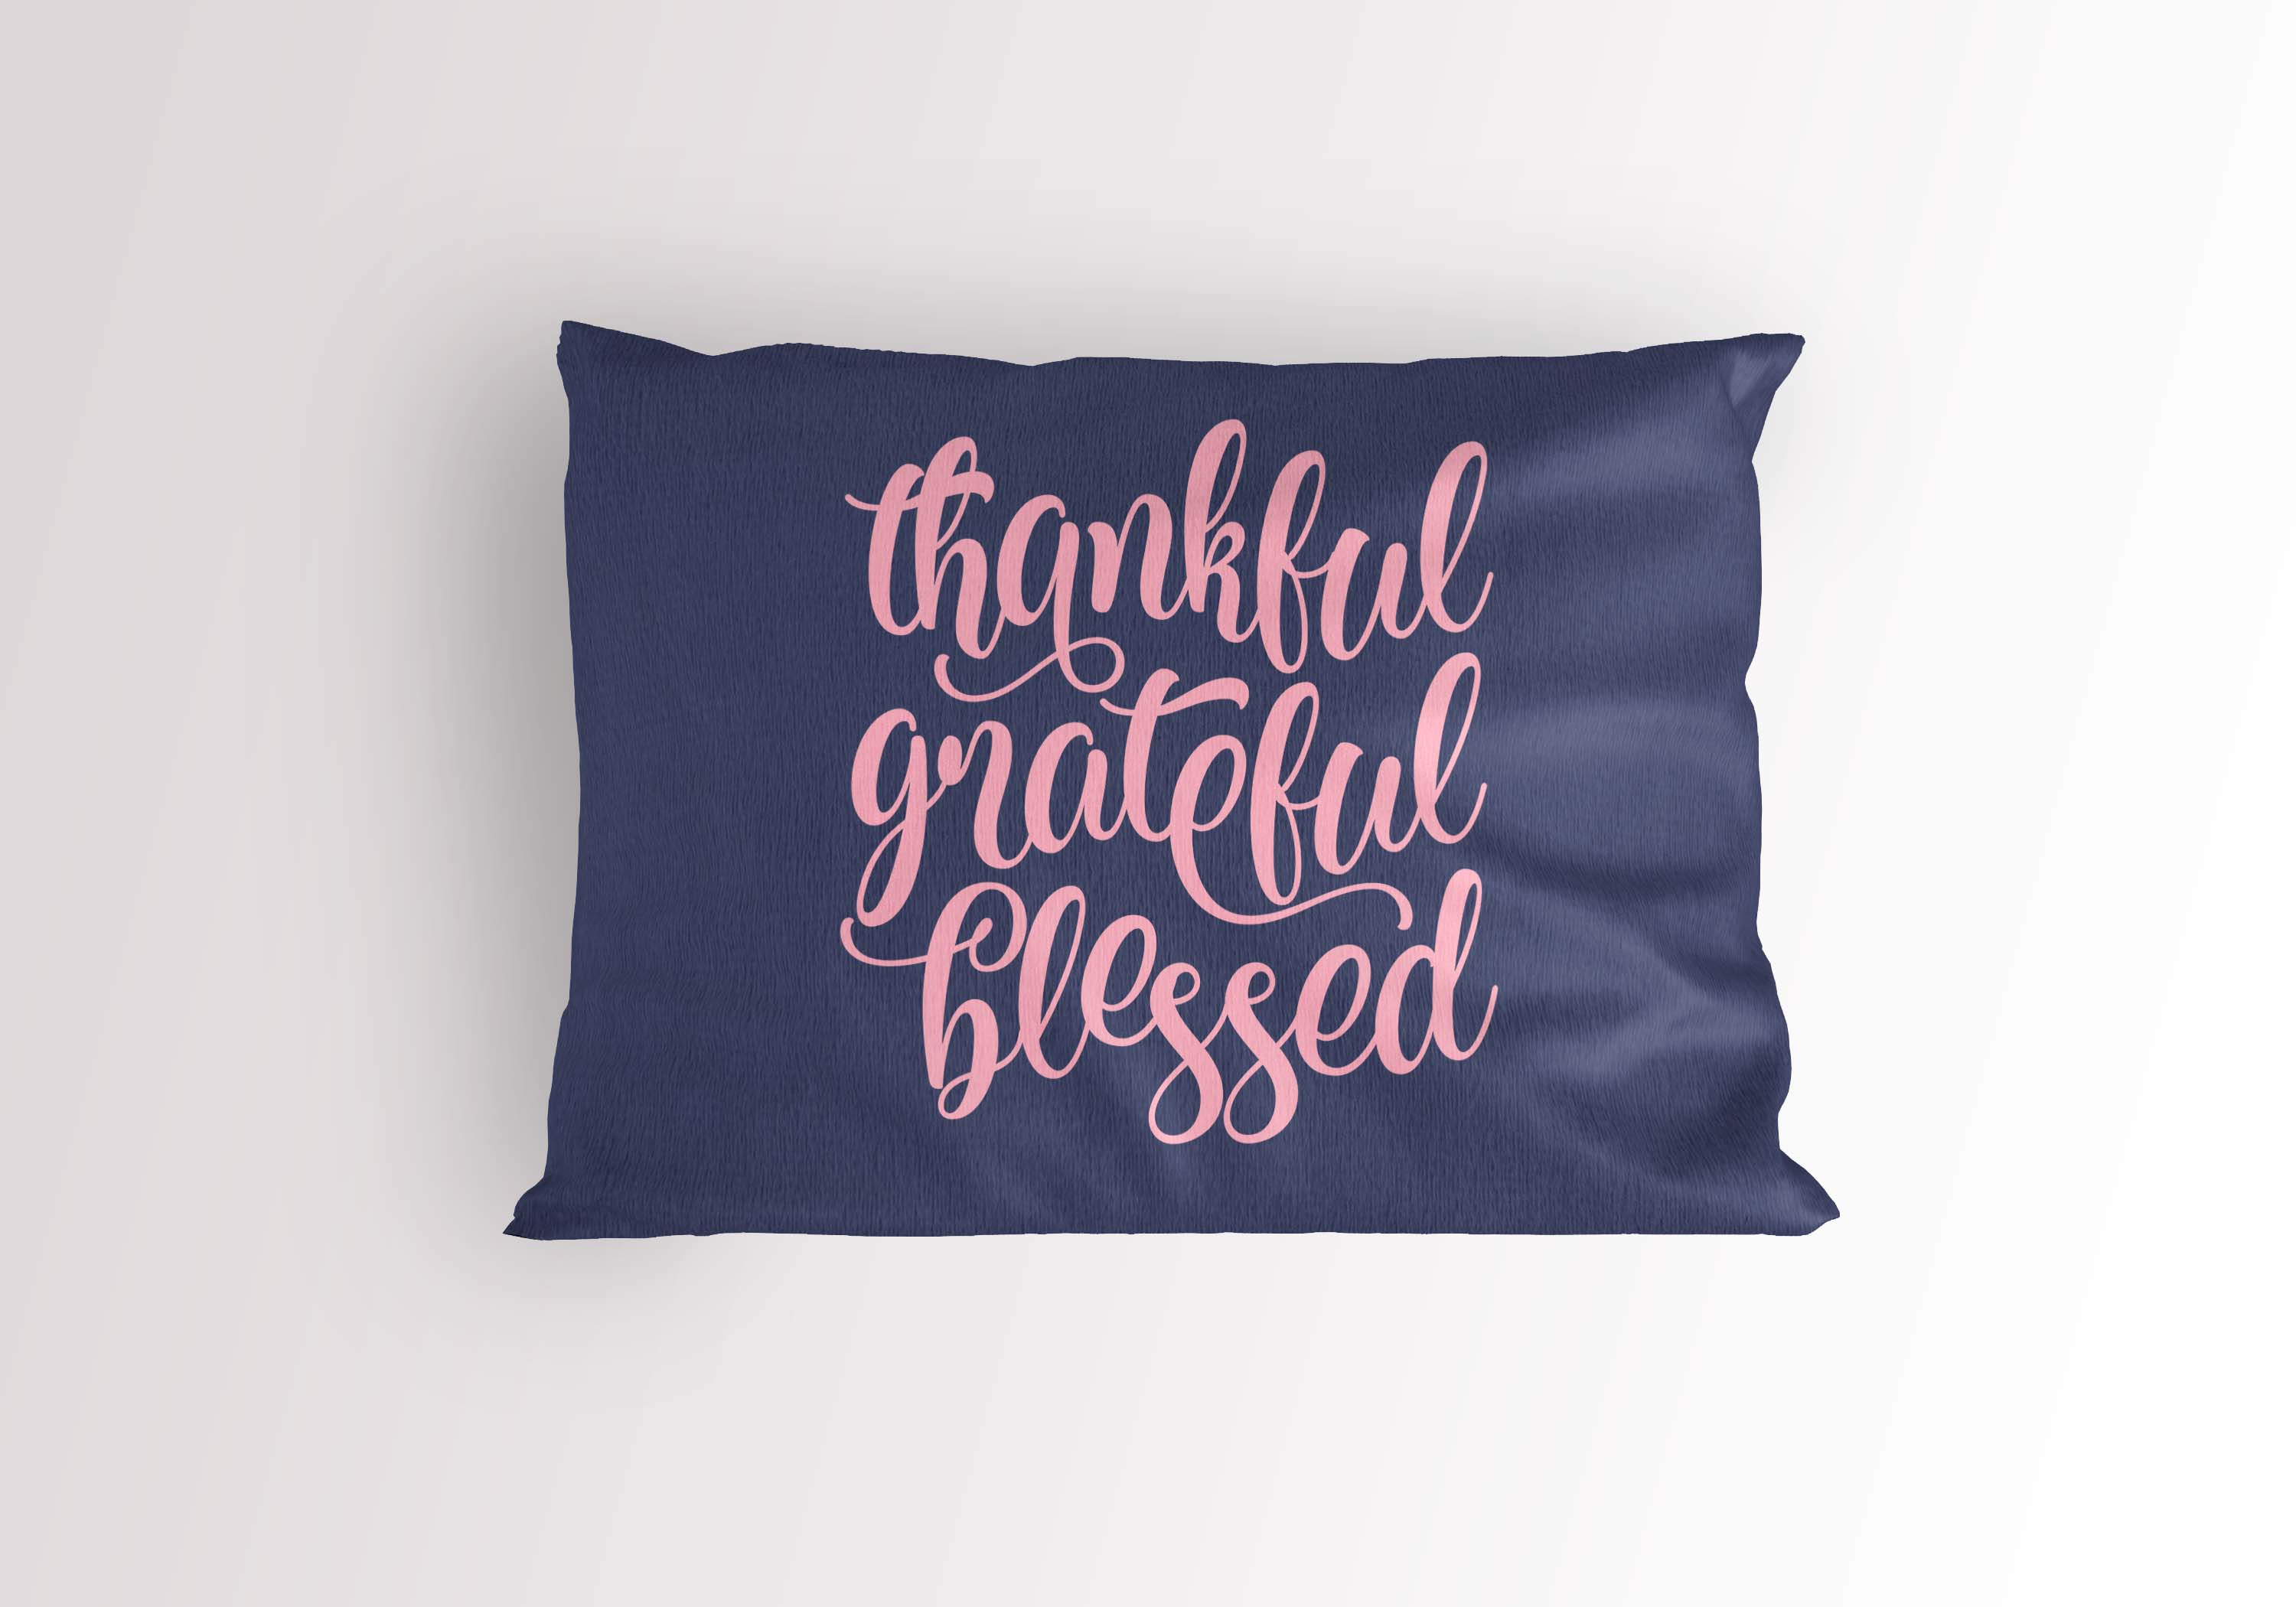 Thankful Grateful Blessed SVG PNG EPS DXF example image 3